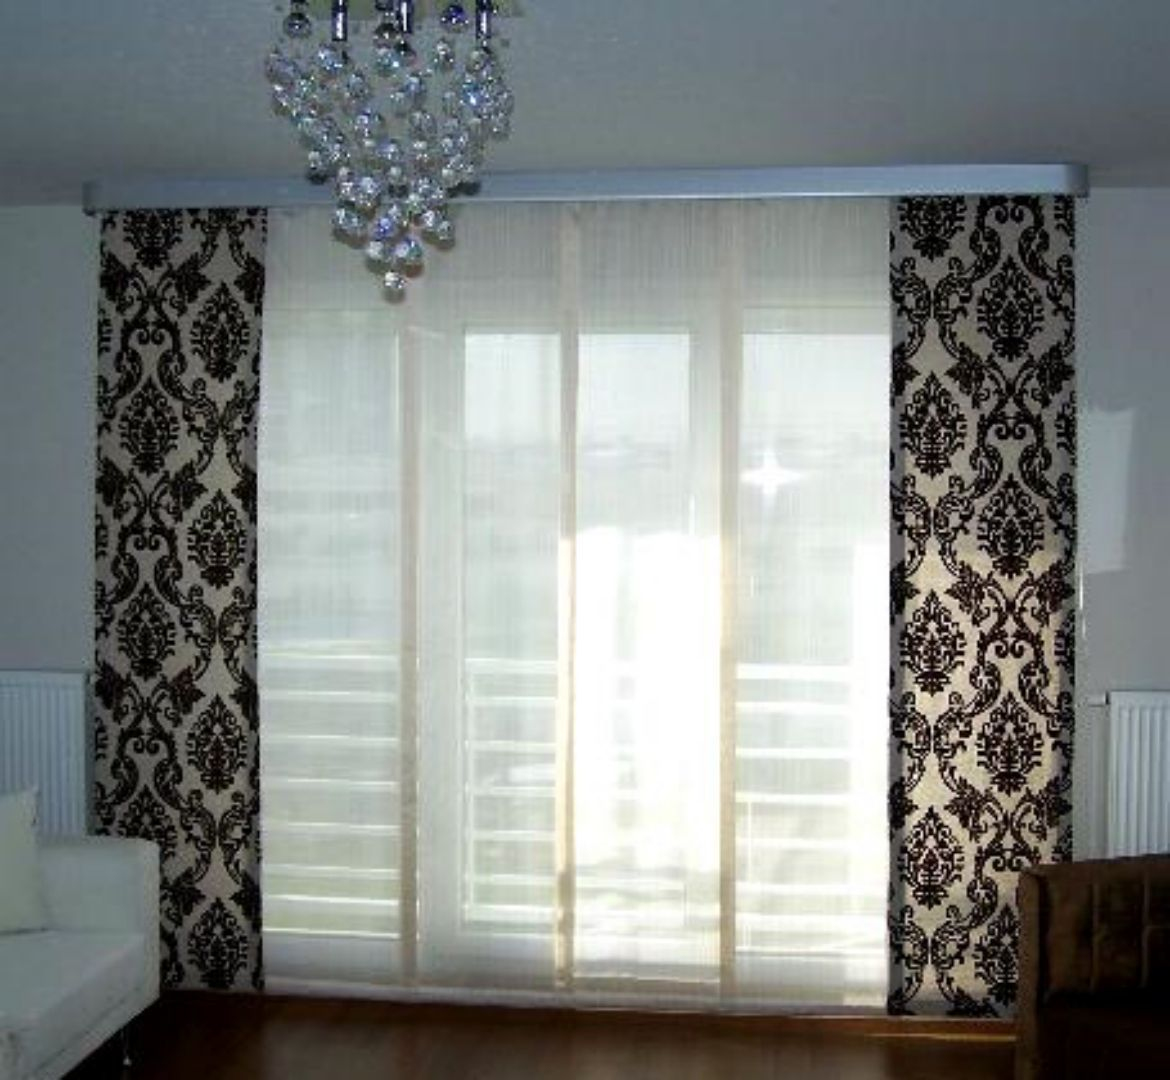 drapes curtains for curtain contemporary ideas designs living colors kitchen summer room modern bedroom white